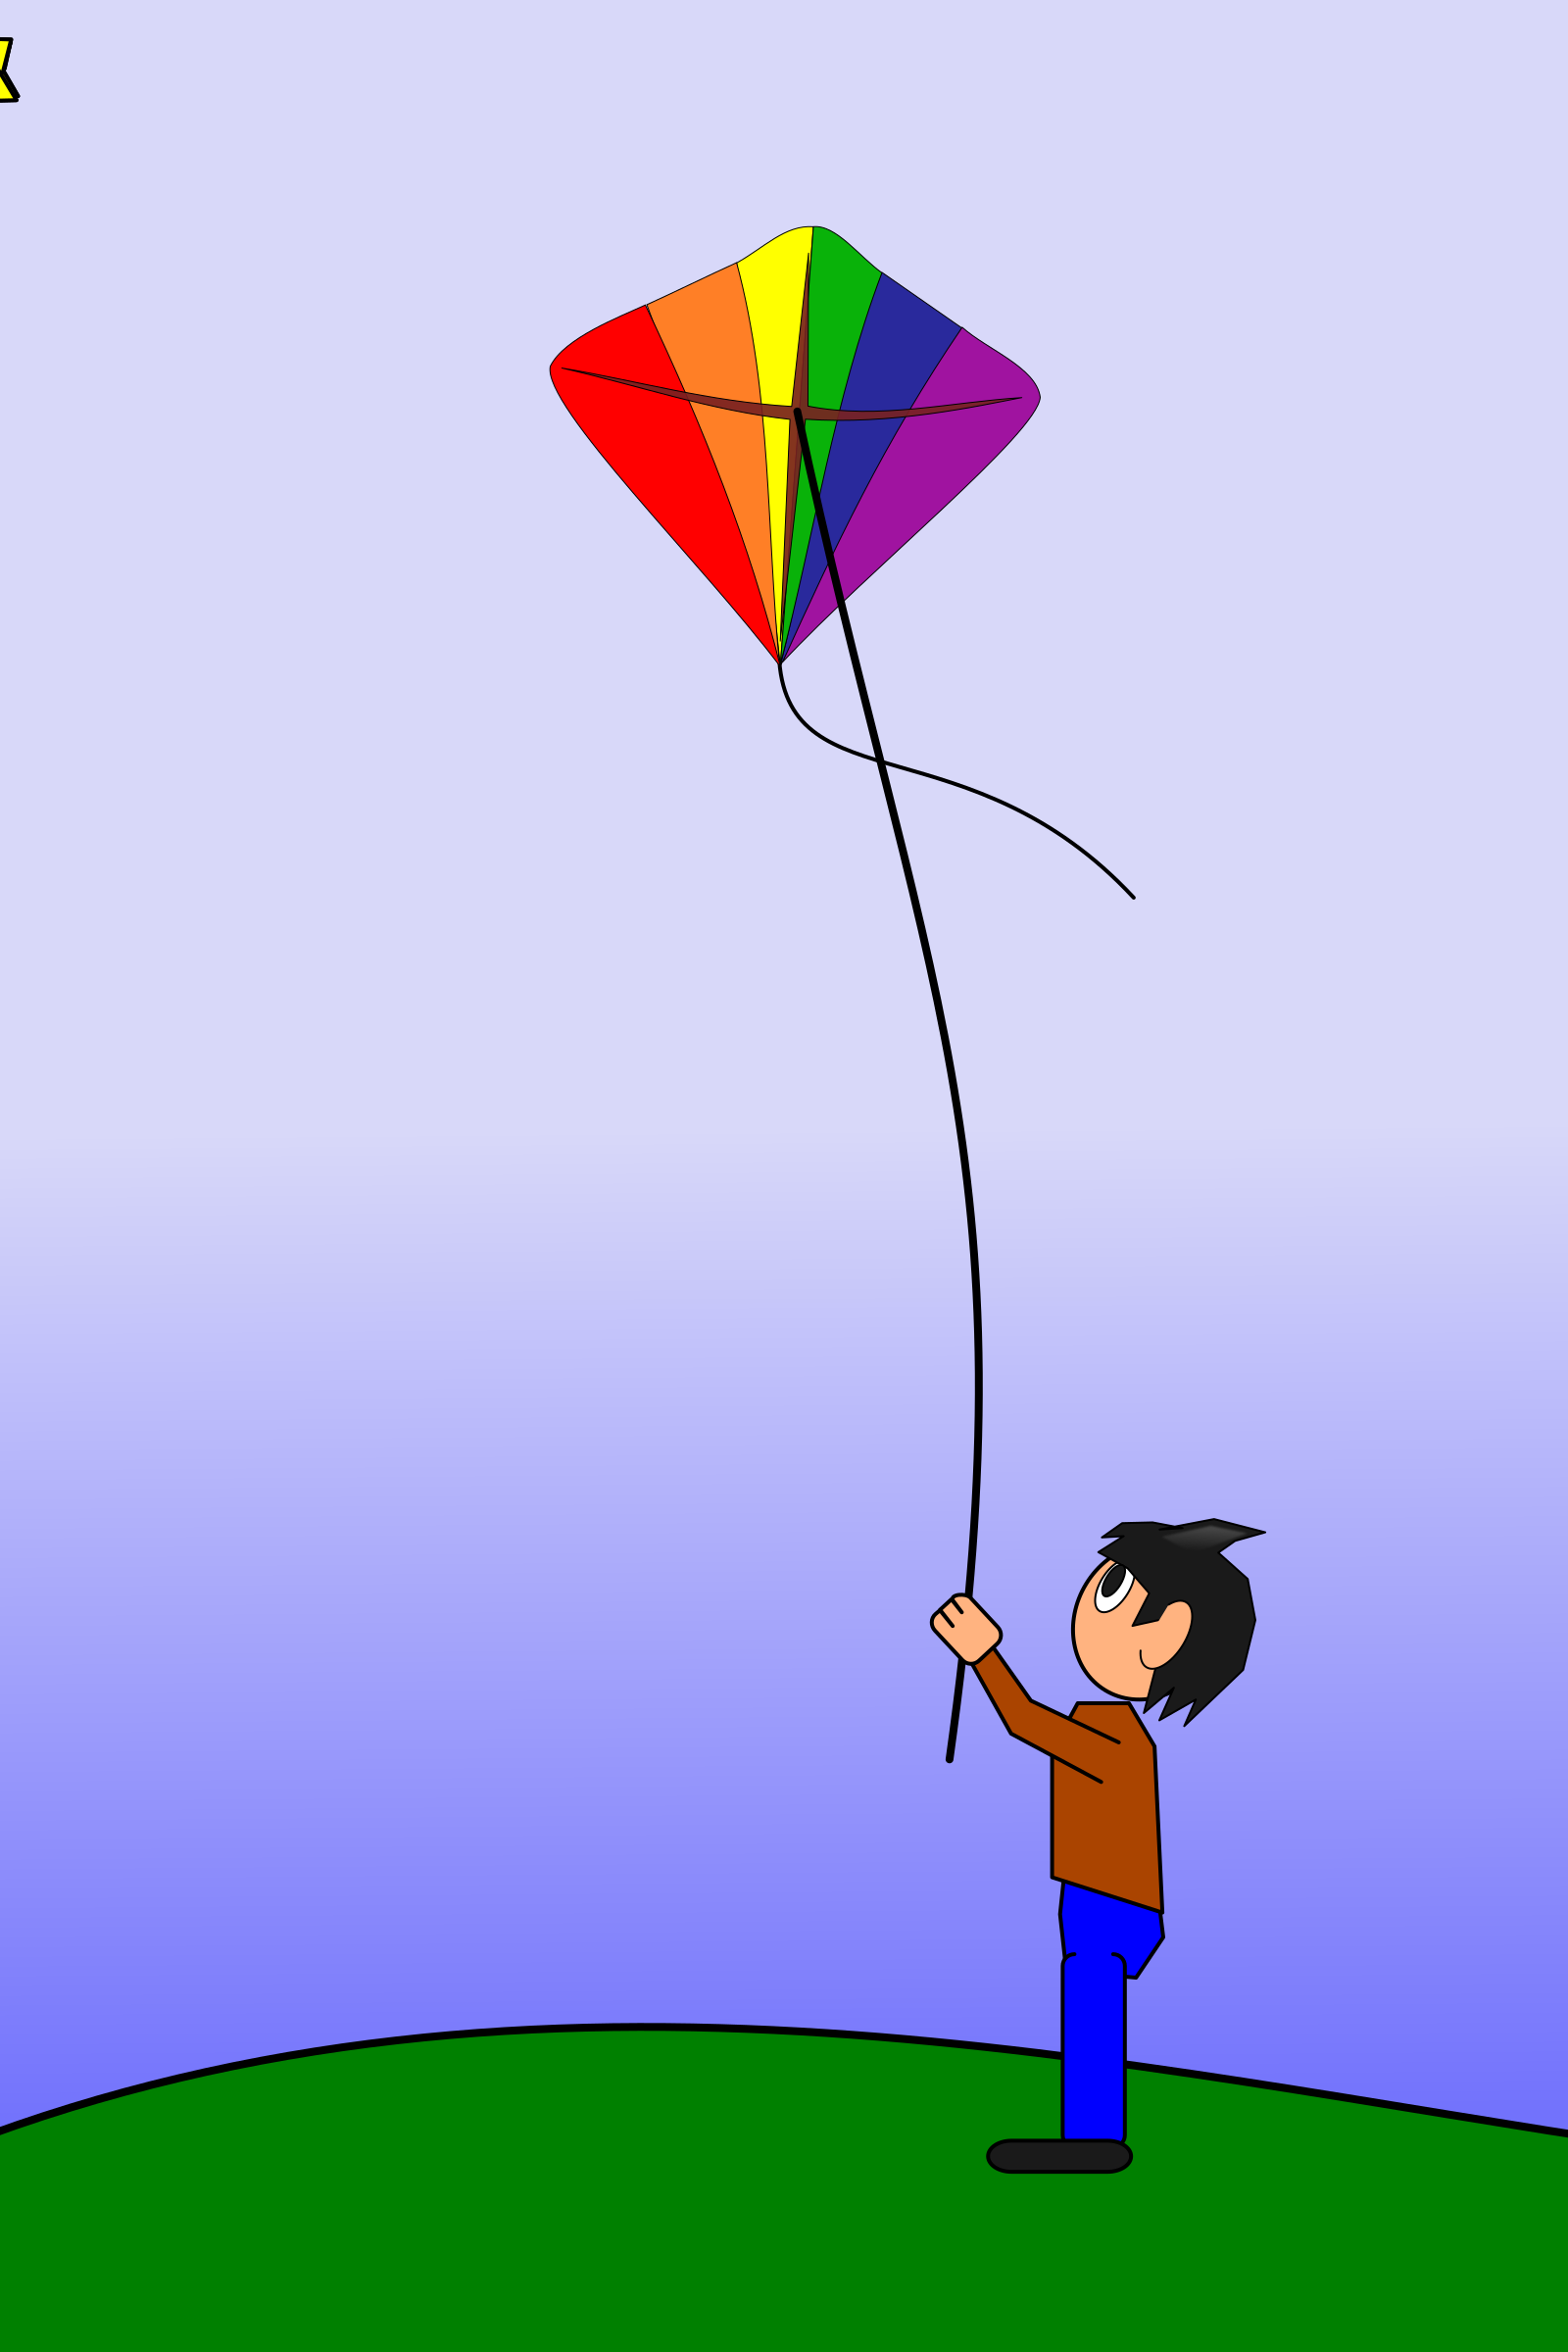 Animation of a Boy Flying a Kite by aukipa